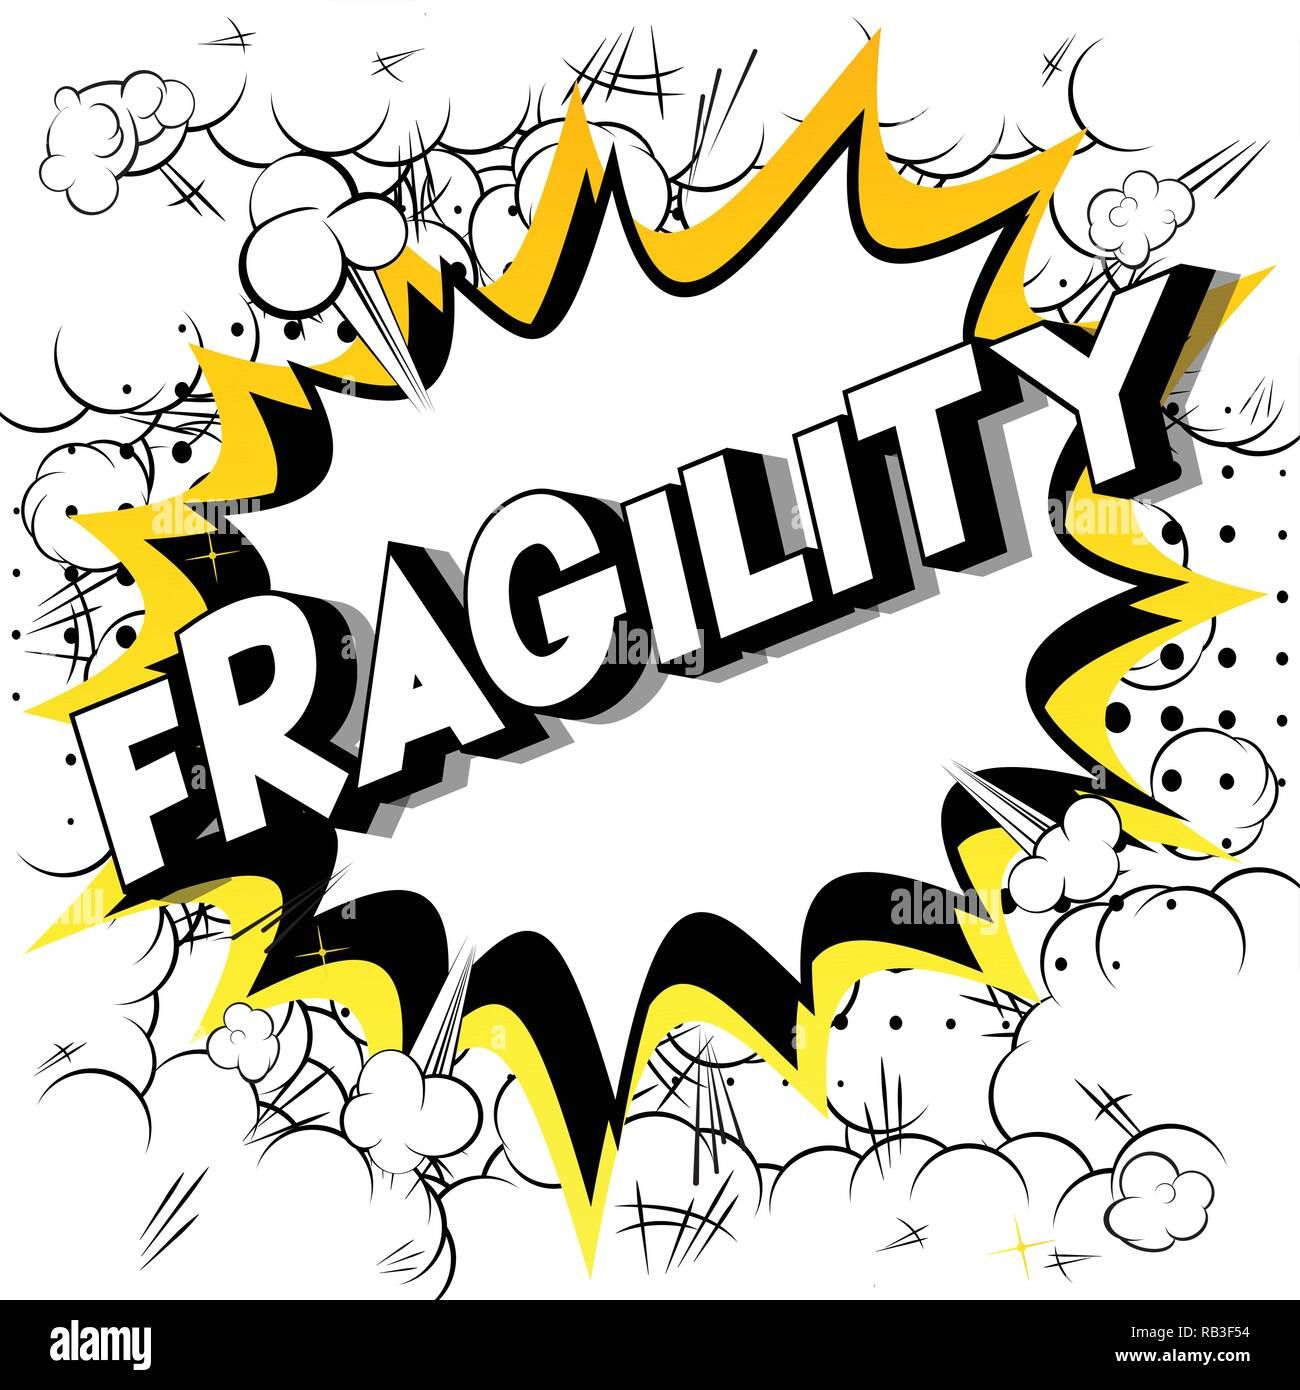 Fragility - Vector illustrated comic book style phrase on abstract background. - Stock Vector